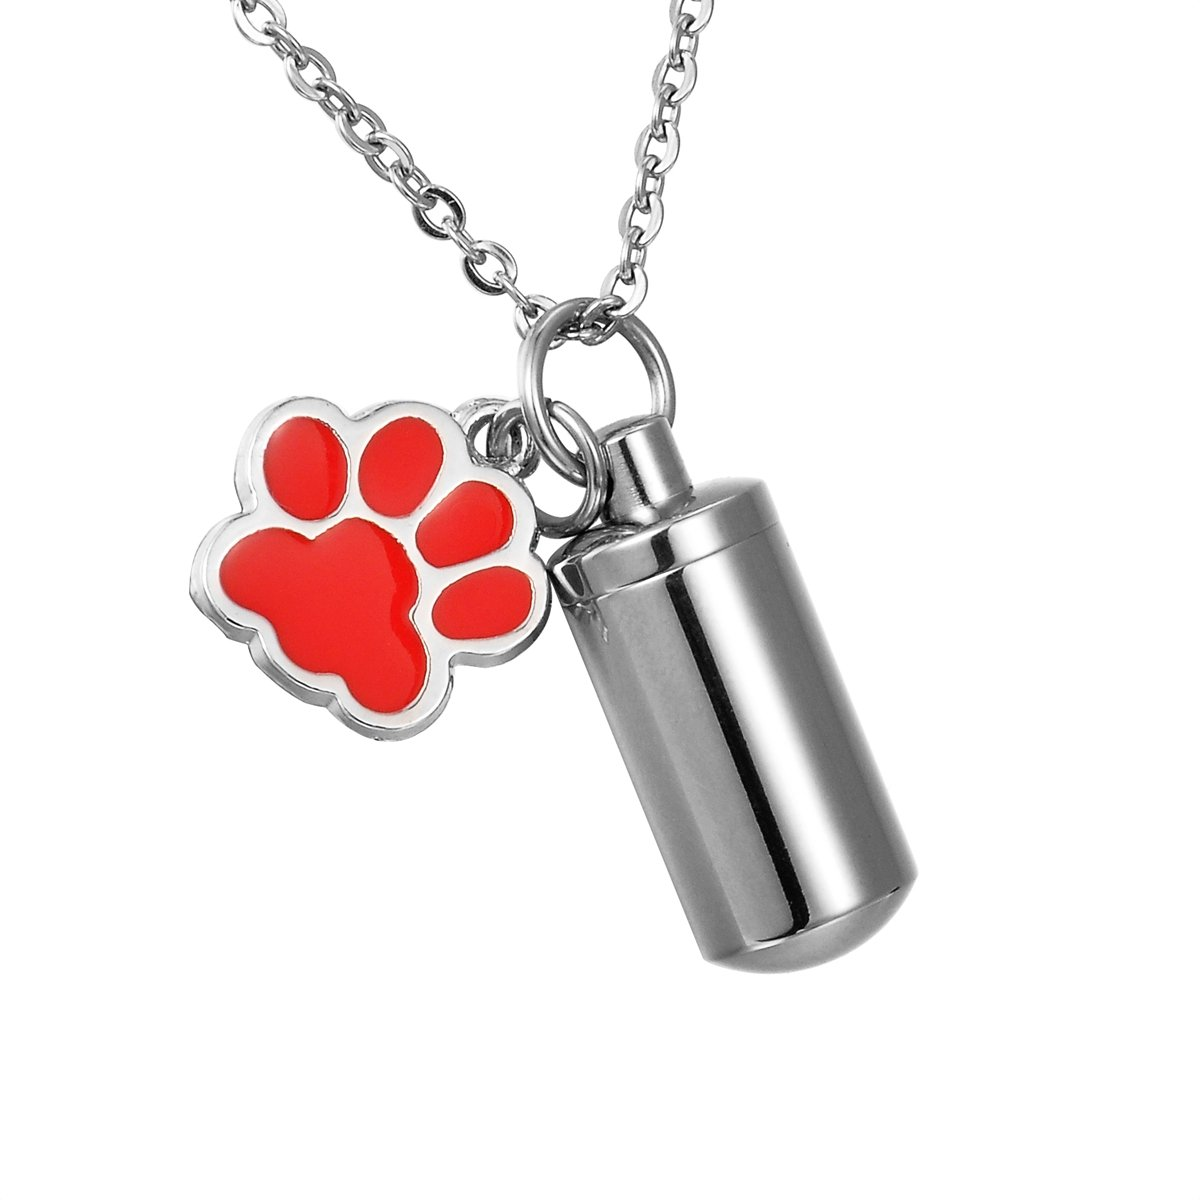 HooAMI Pet Dog Paw Charm & Cylinder Memorial Urn Necklace Stainless Steel Cremation Jewelry TY BETY95025